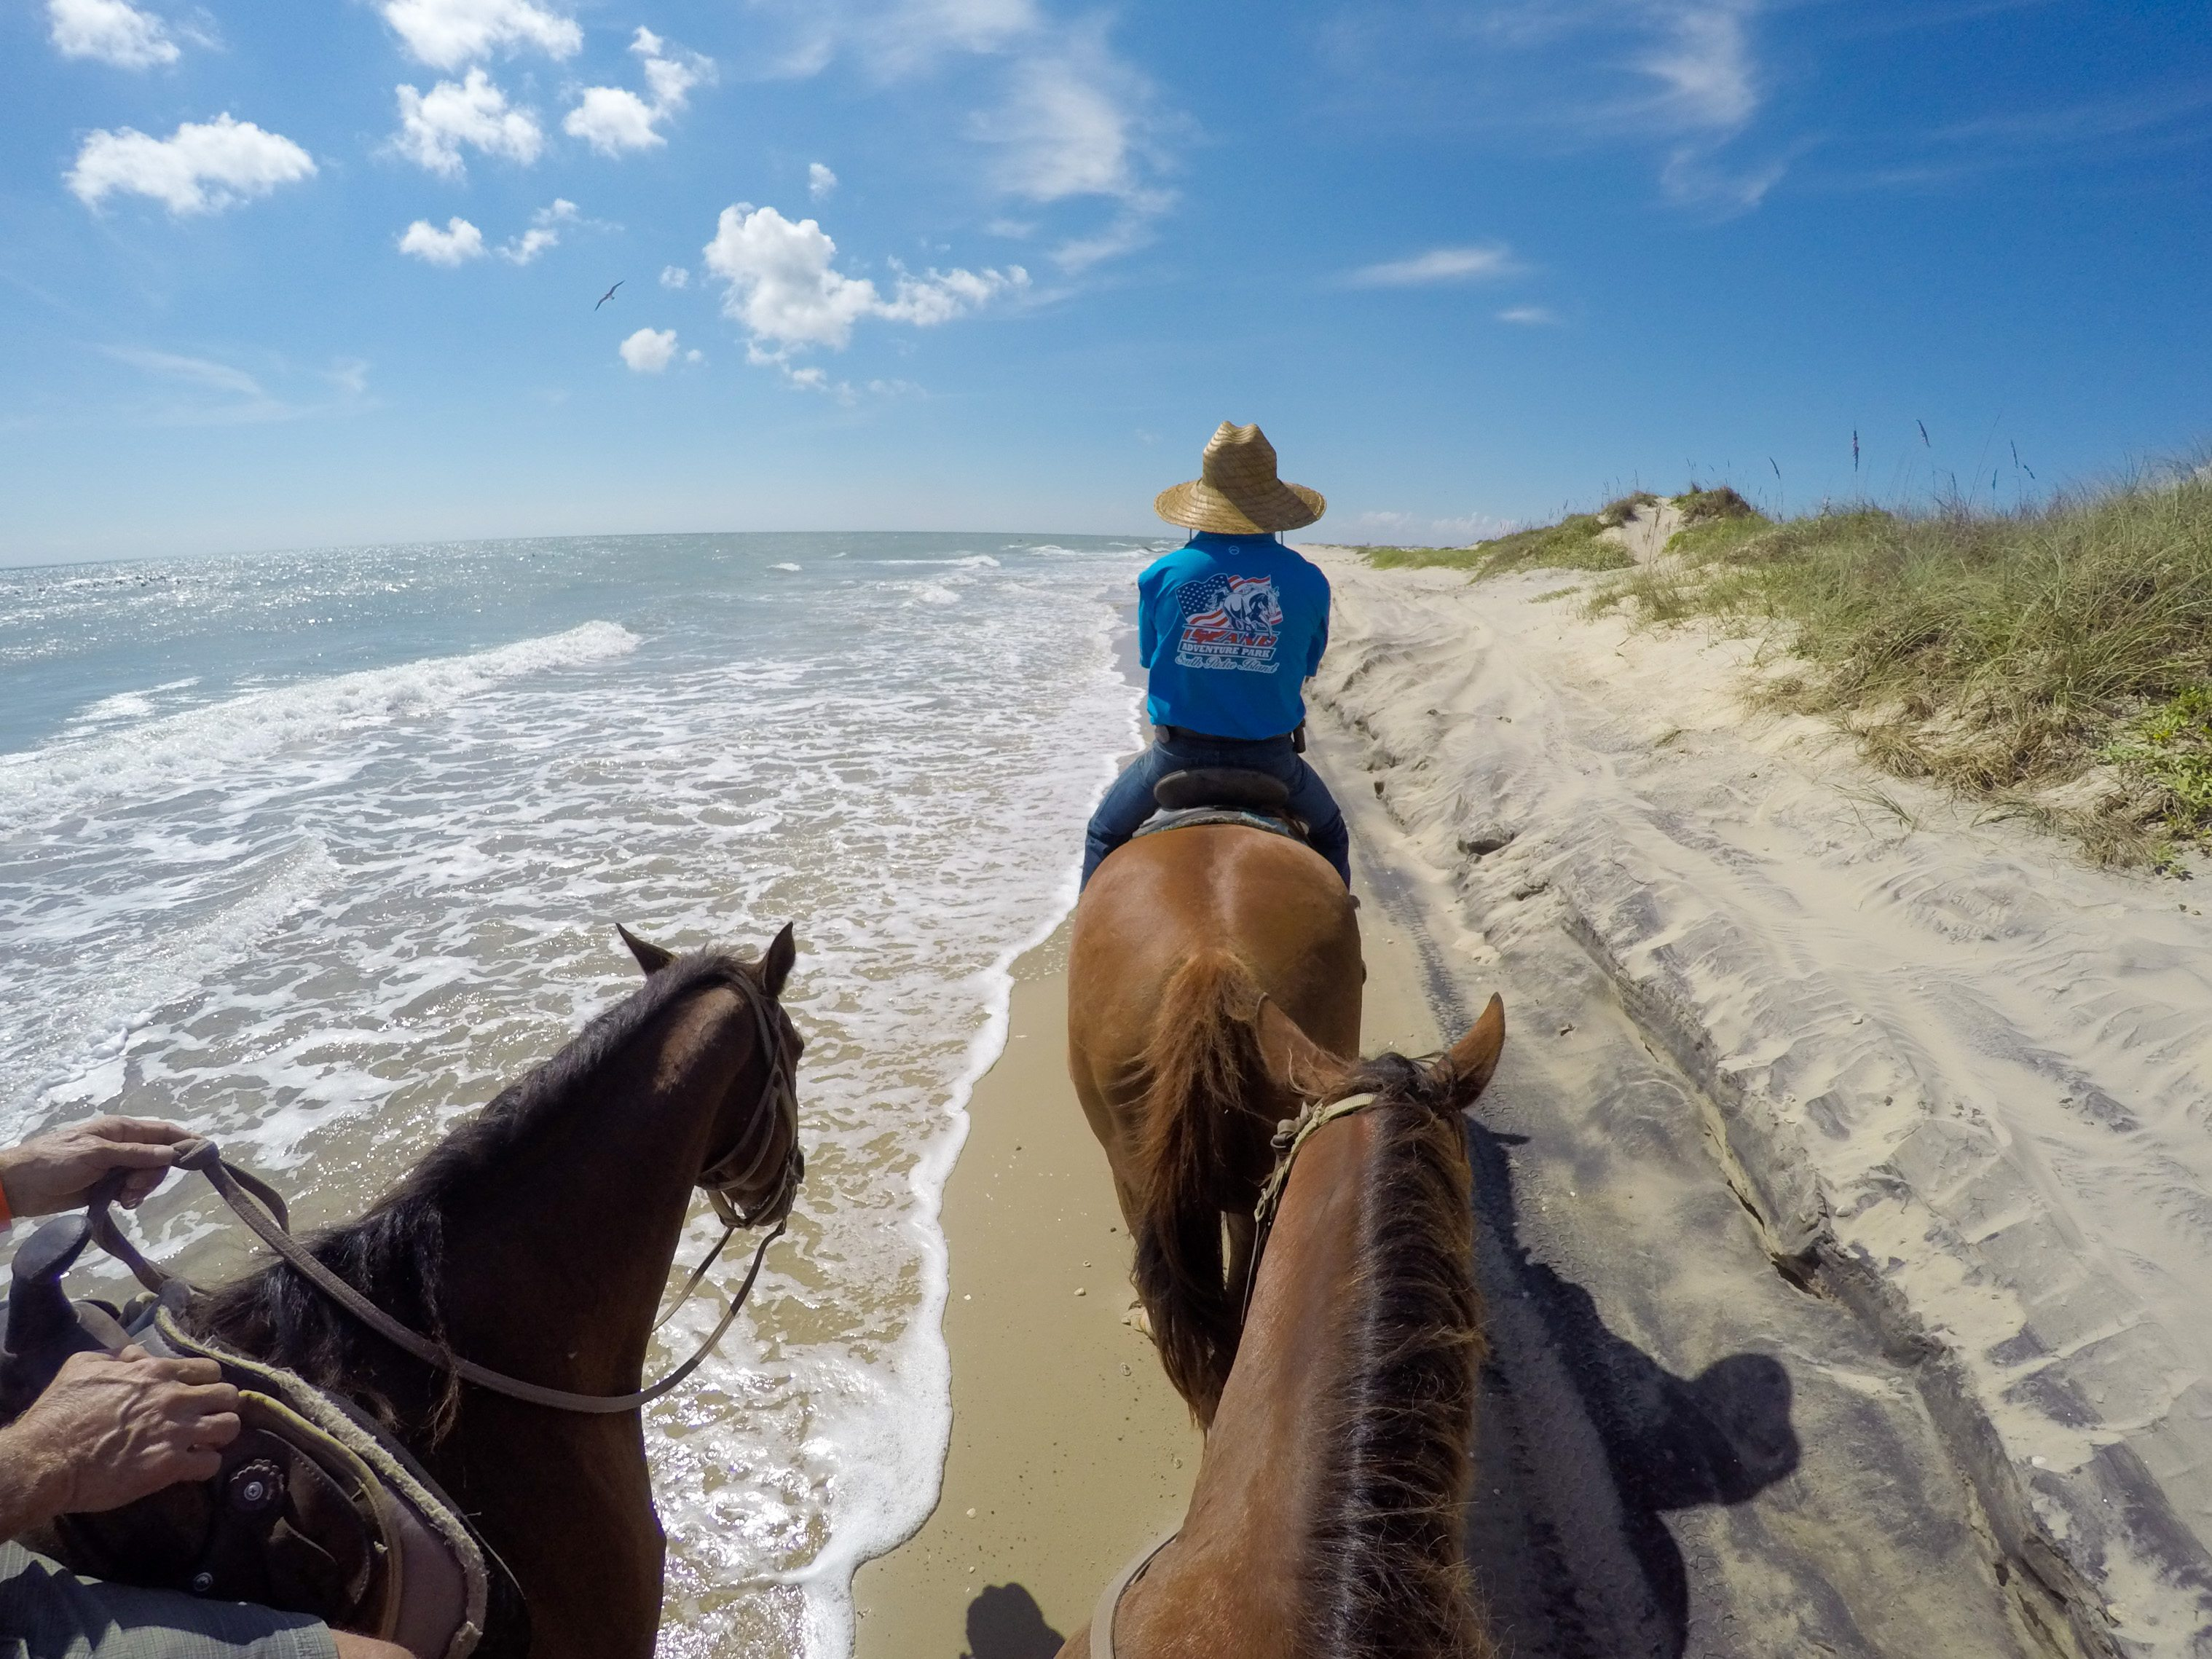 Things to do on South Padre Island